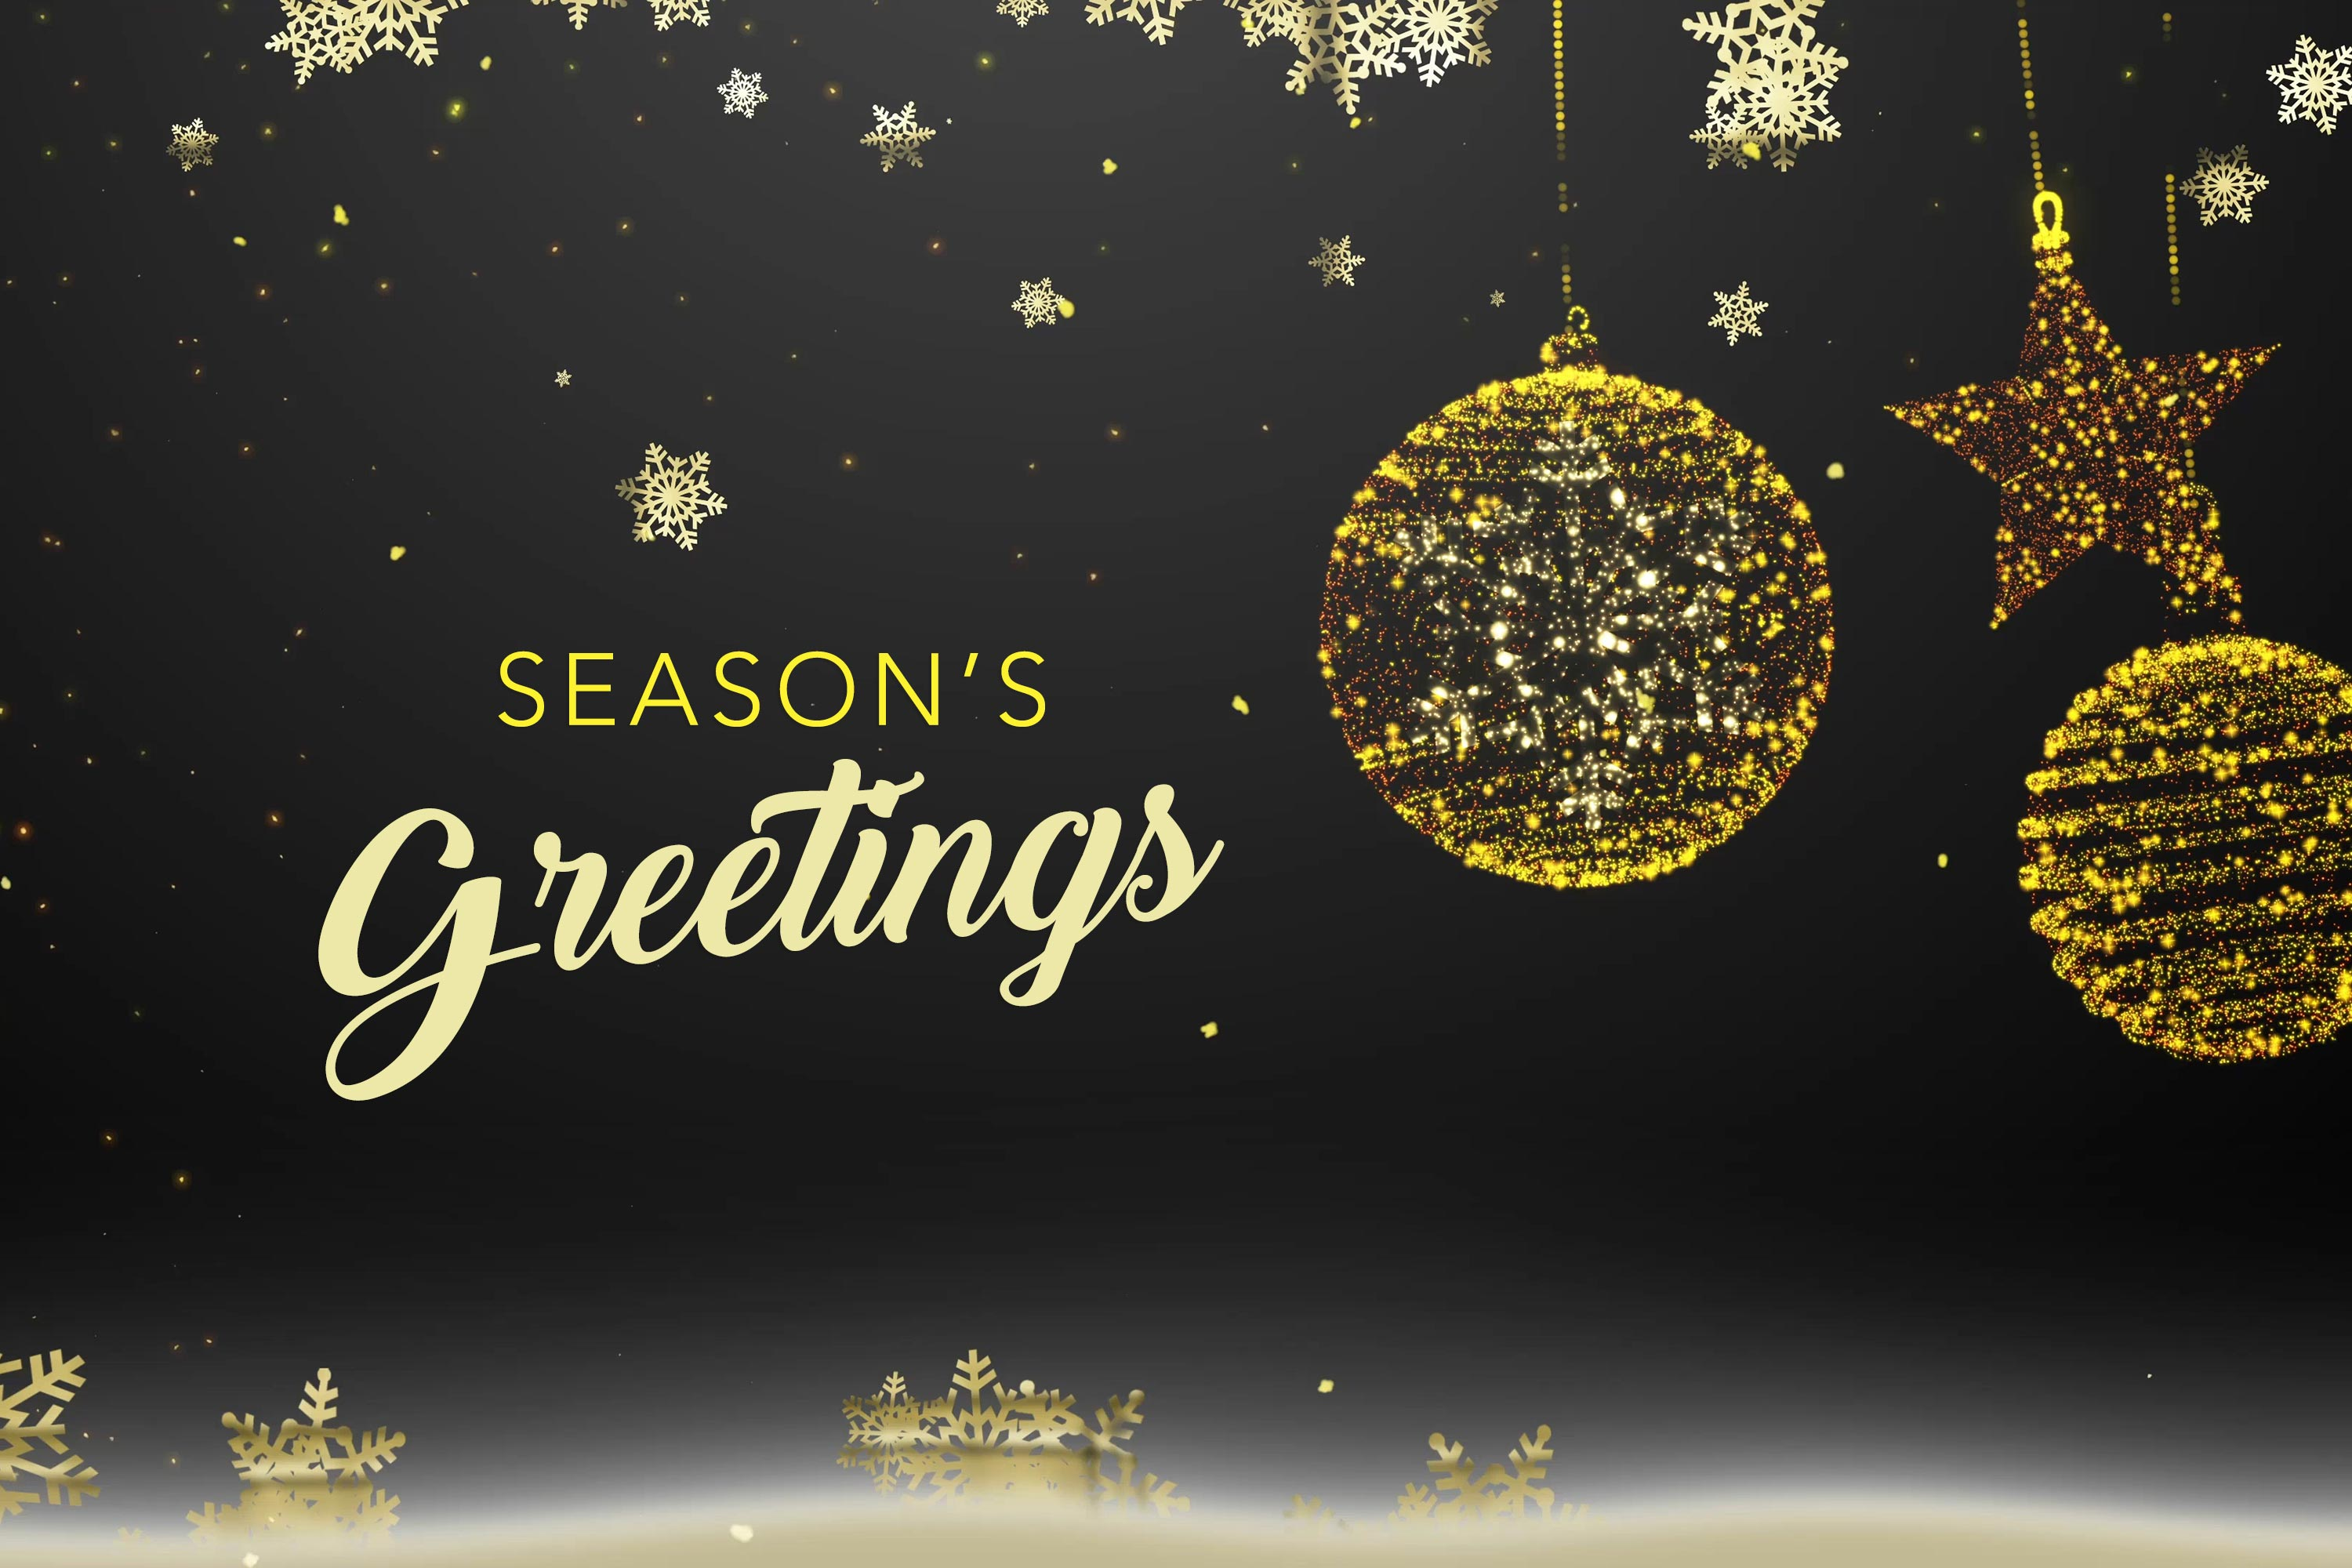 download 15 Seasons Greetings Cards Stock Images HD 3000x2000